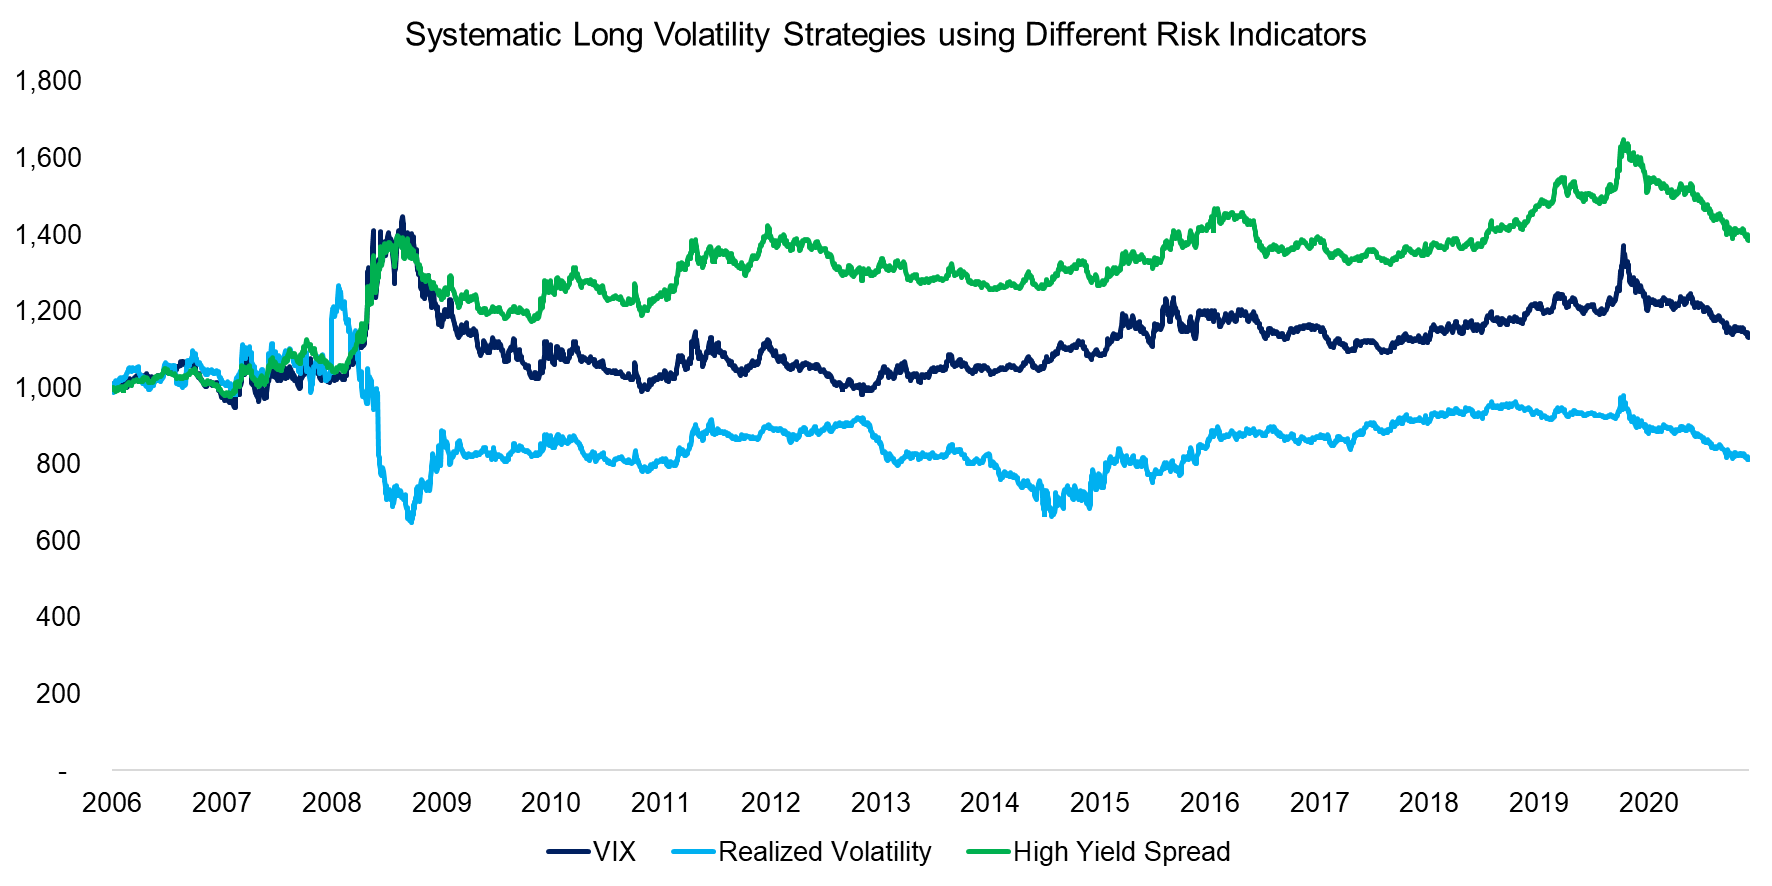 Systematic Long Volatility Strategies using Different Risk Indicators